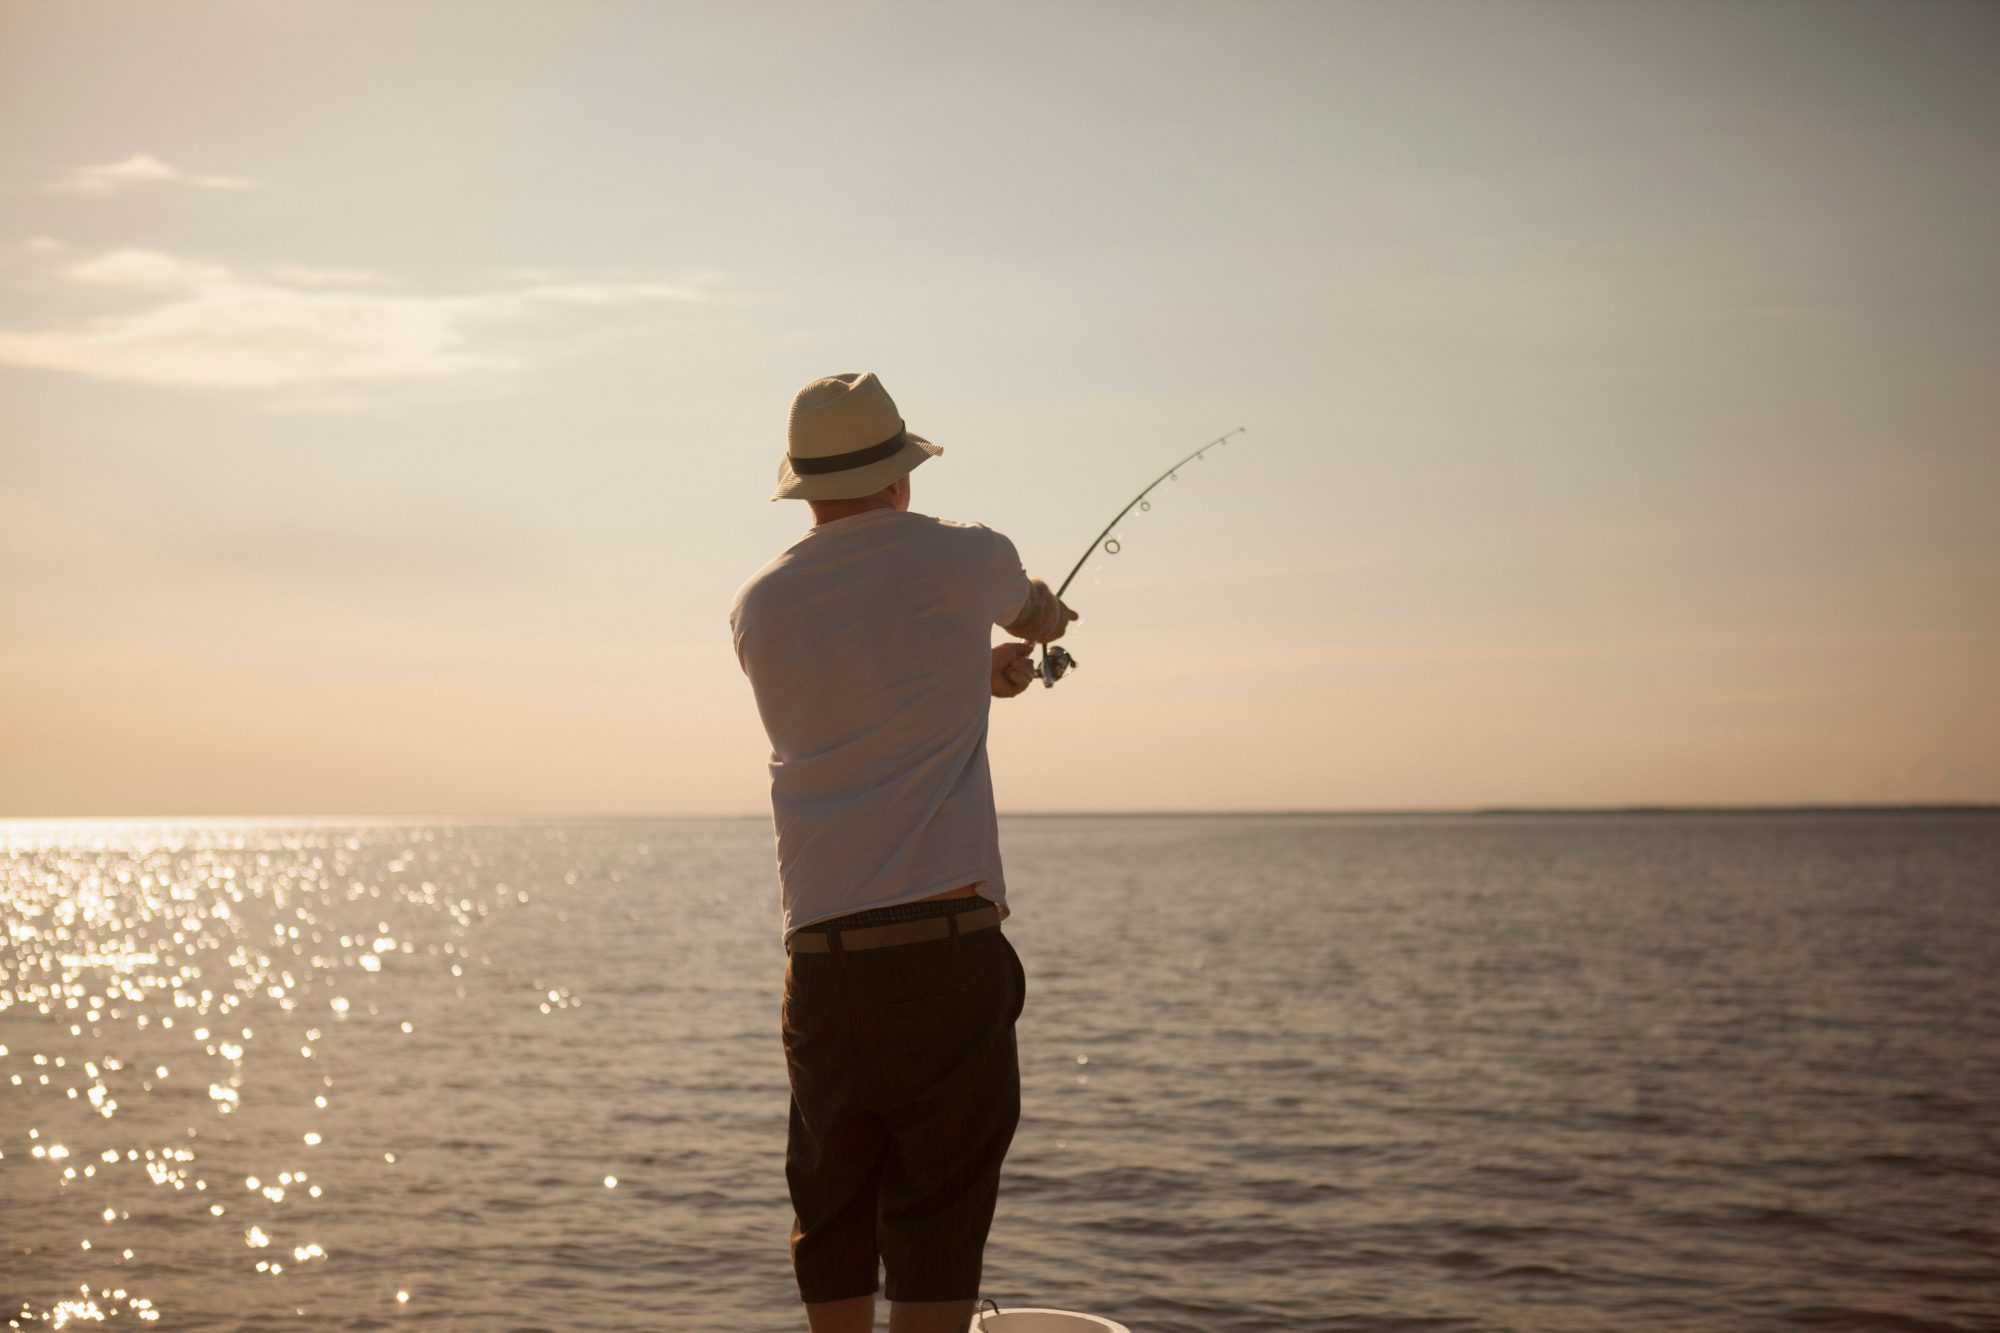 20 States Where You Can Go Fishing for Free This Weekend